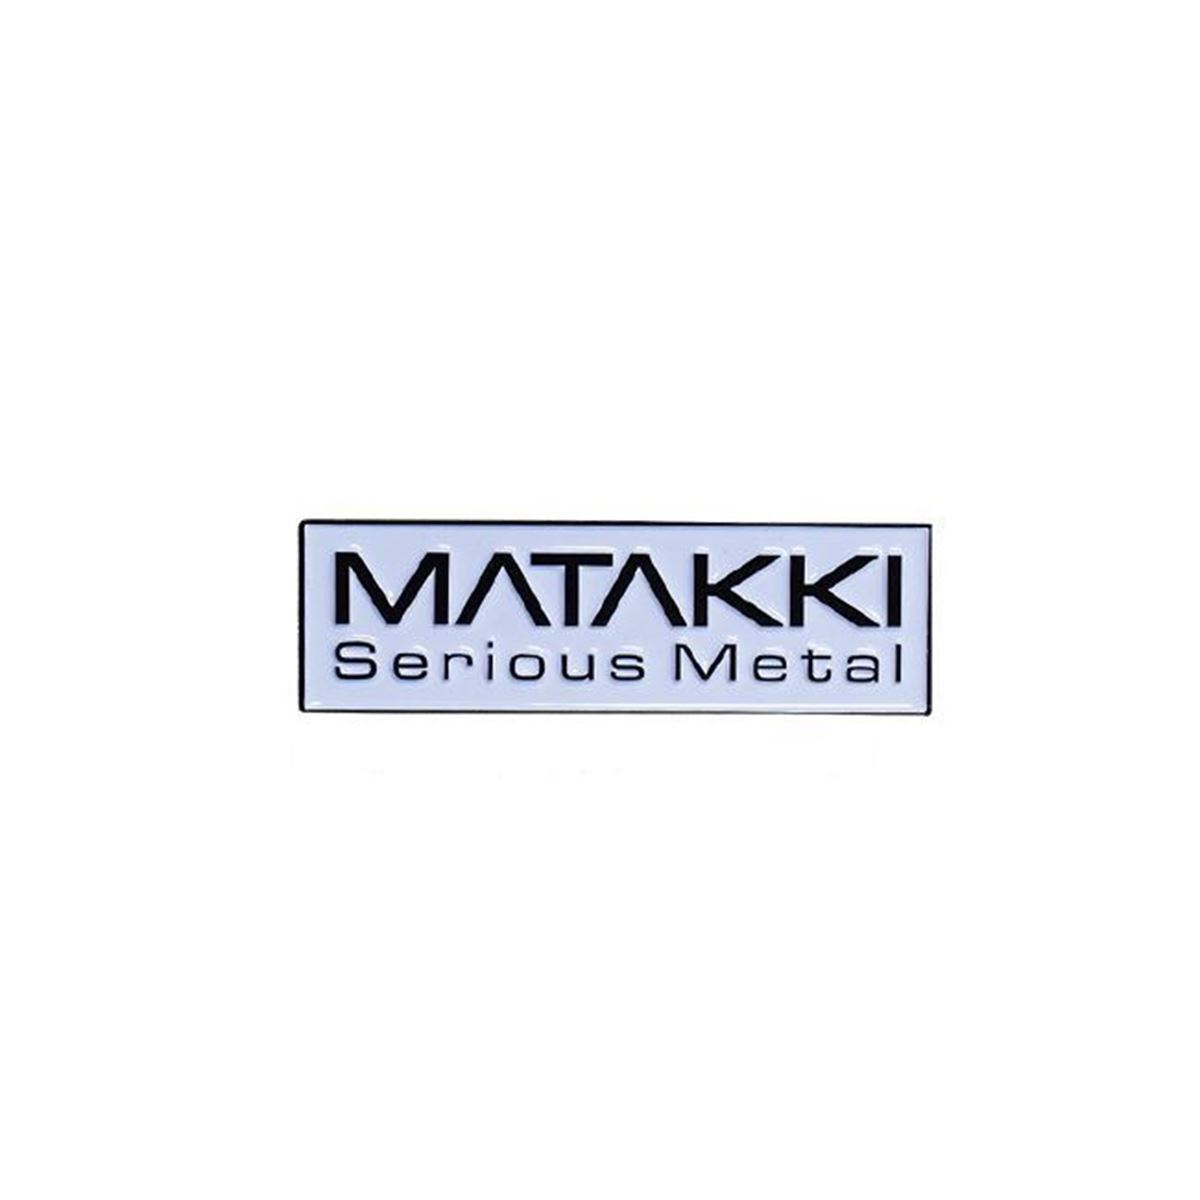 Picture of Matakki Serious Metal Pin Badge